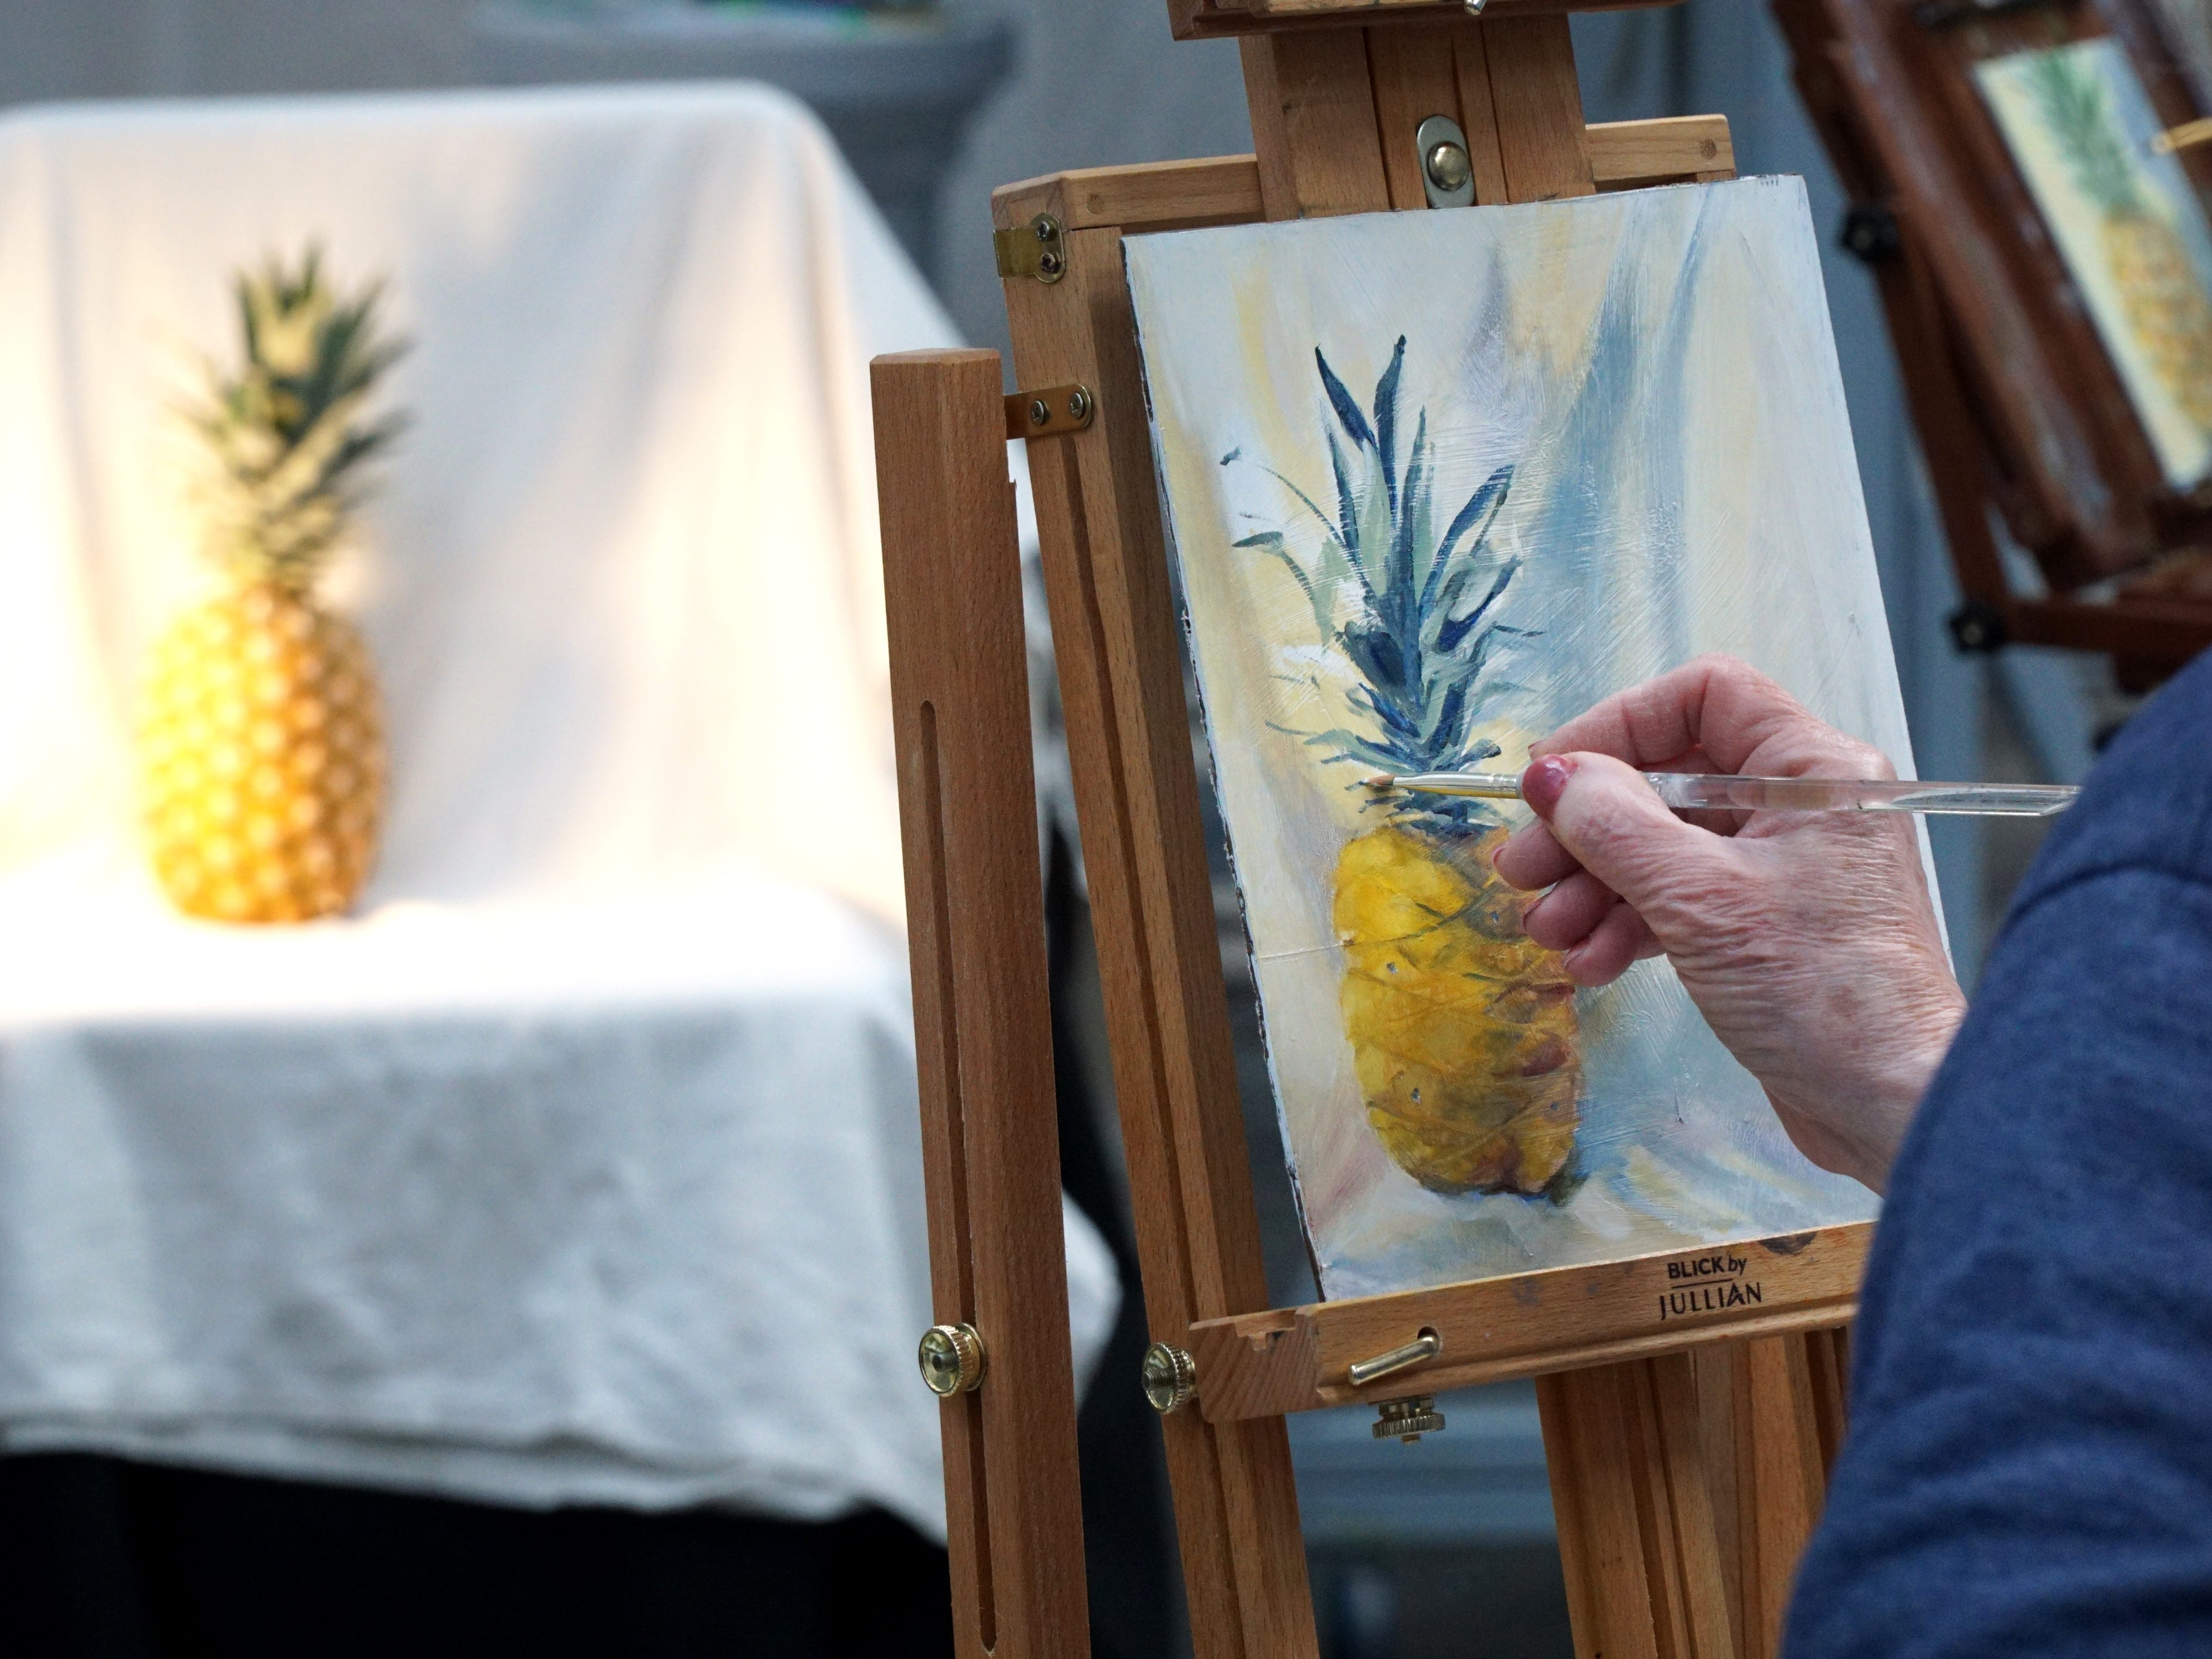 Todoroff works on his oil painting of a pineapple.